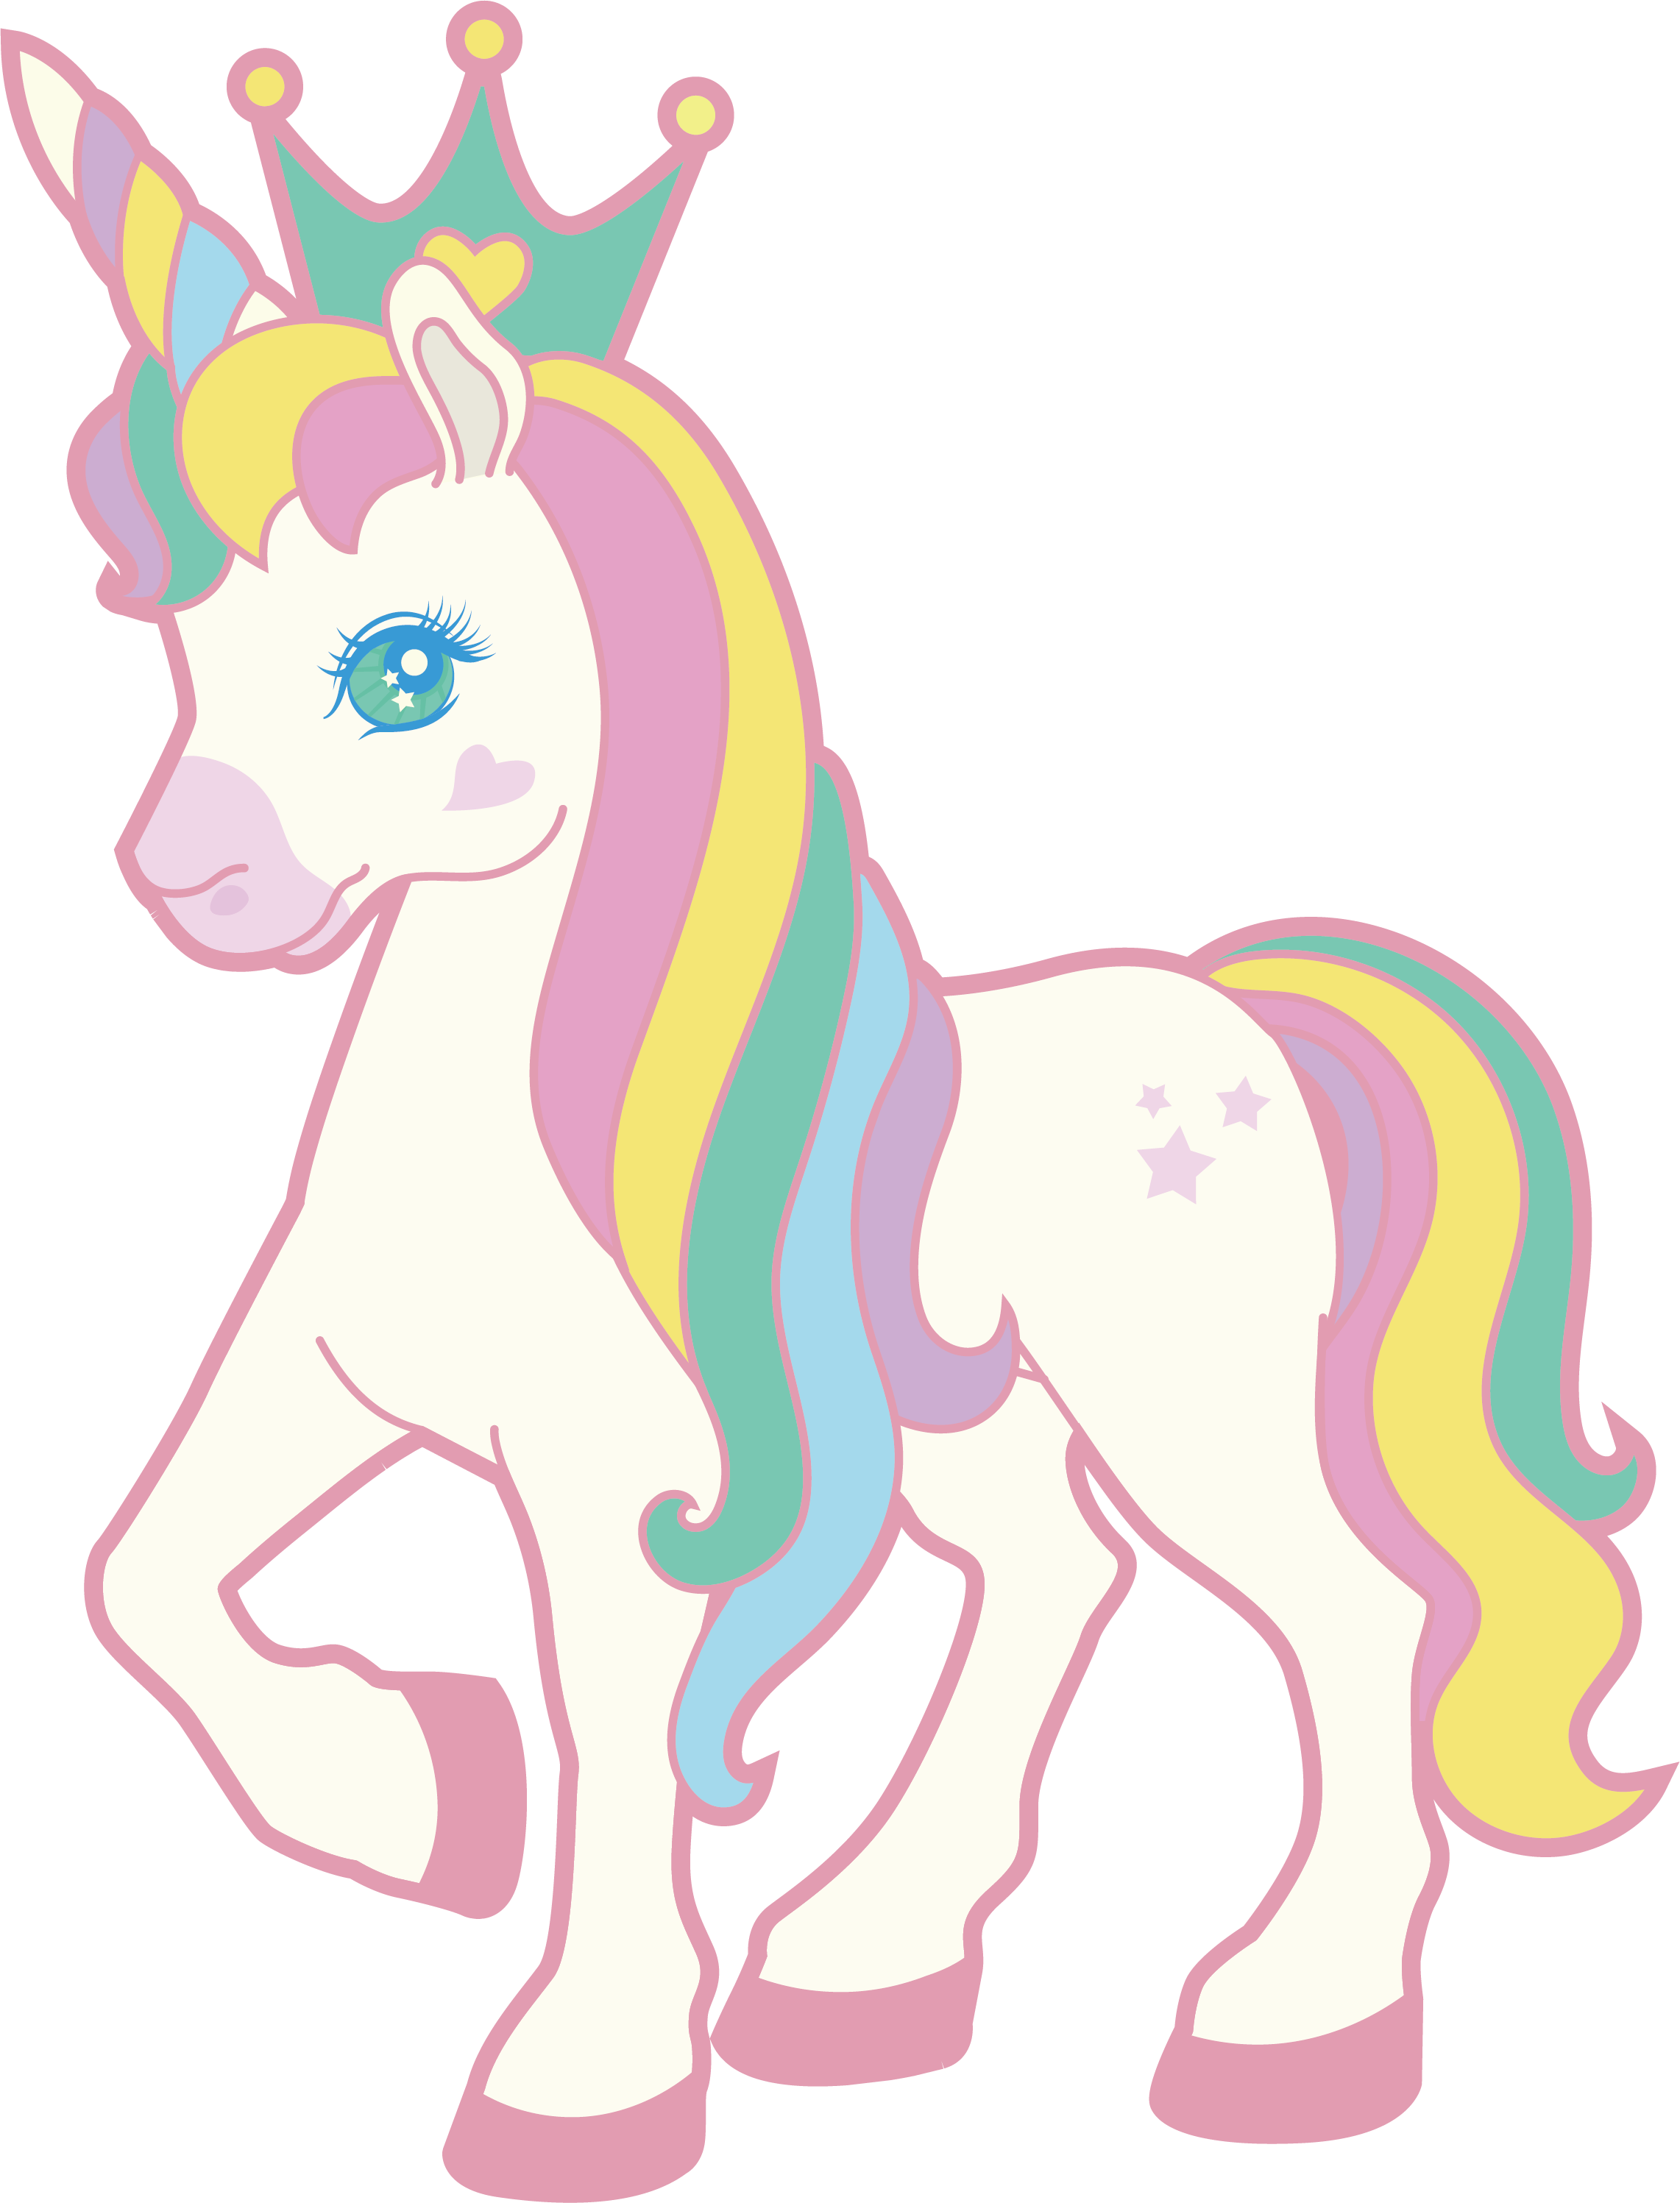 clipart royalty free library Birthday a in the. Cherries clipart unicorn.